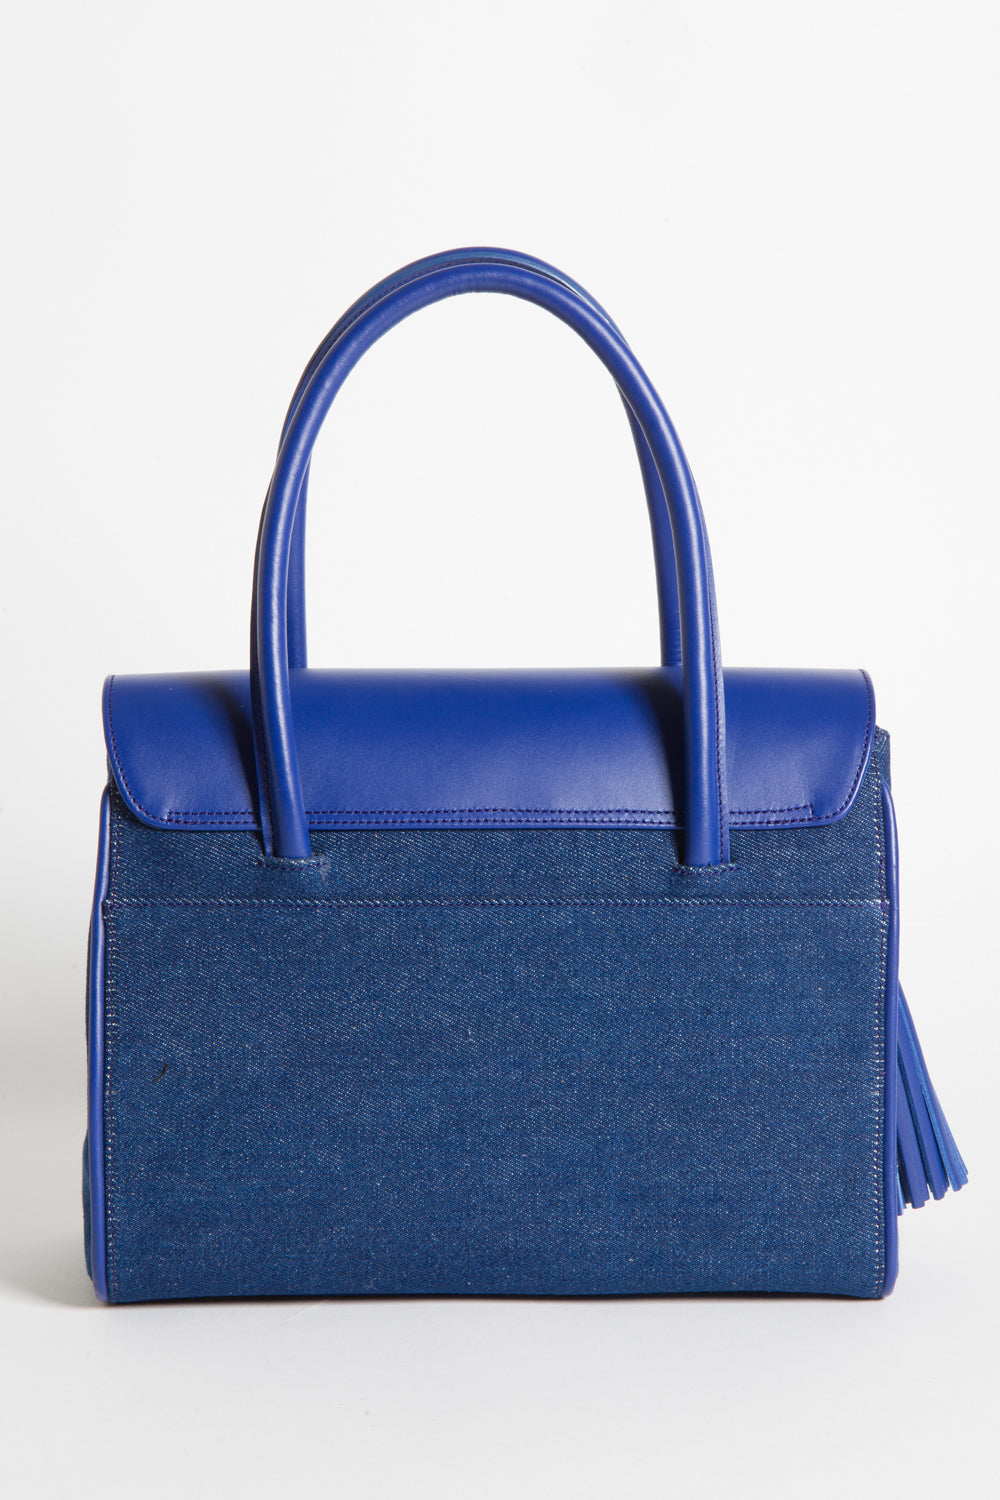 Denim & Cobalt Leather Christy Mini Tote | Back View | Mel Boteri